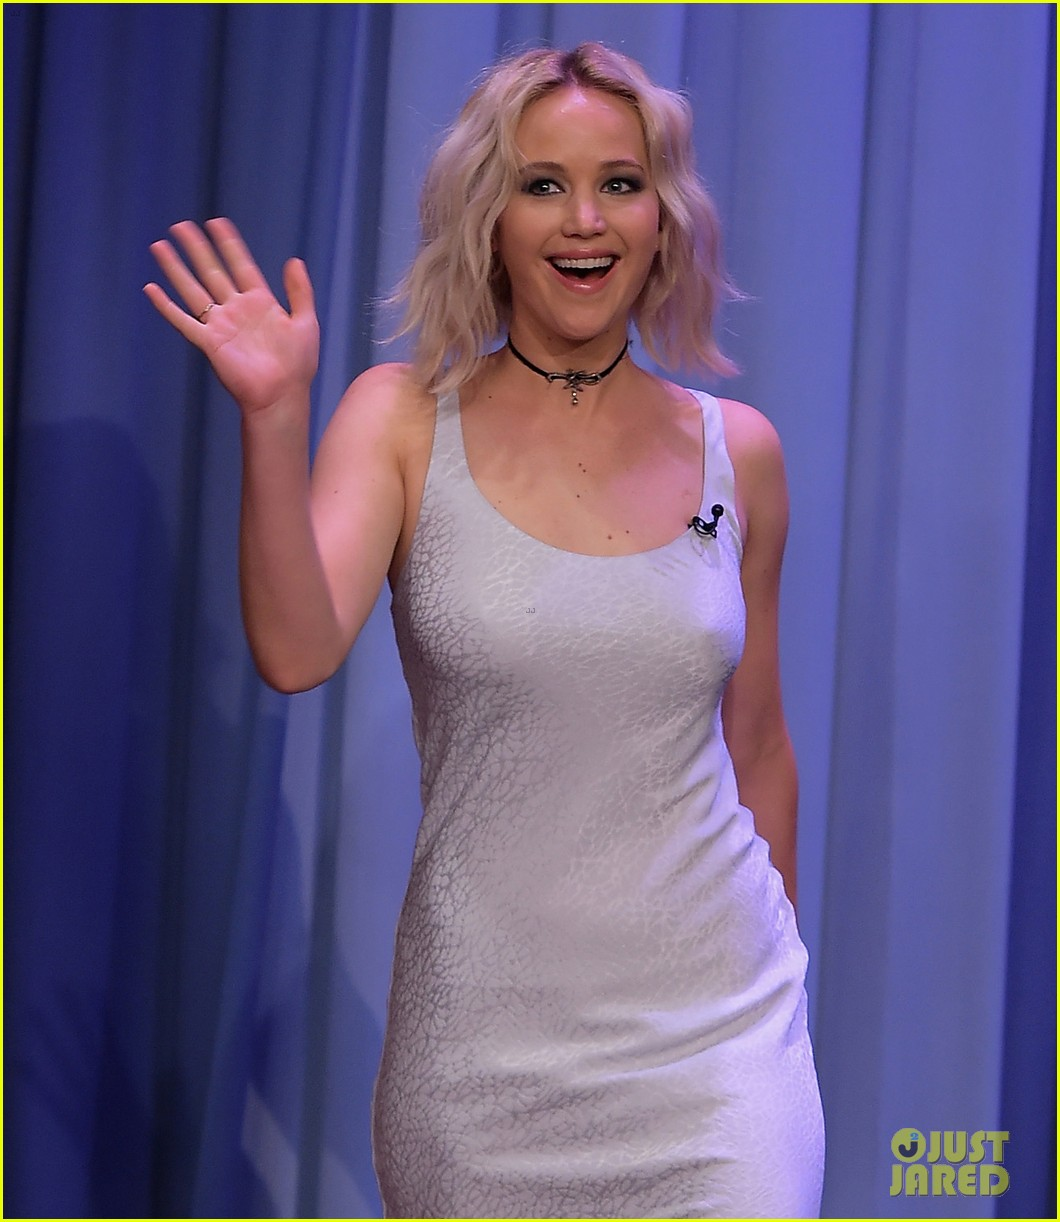 http://cdn04.cdn.justjared.com/wp-content/uploads/2016/05/lawrence-tconfessions/jennifer-lawrence-plays-true-confessions-with-john-oliver-10.jpg